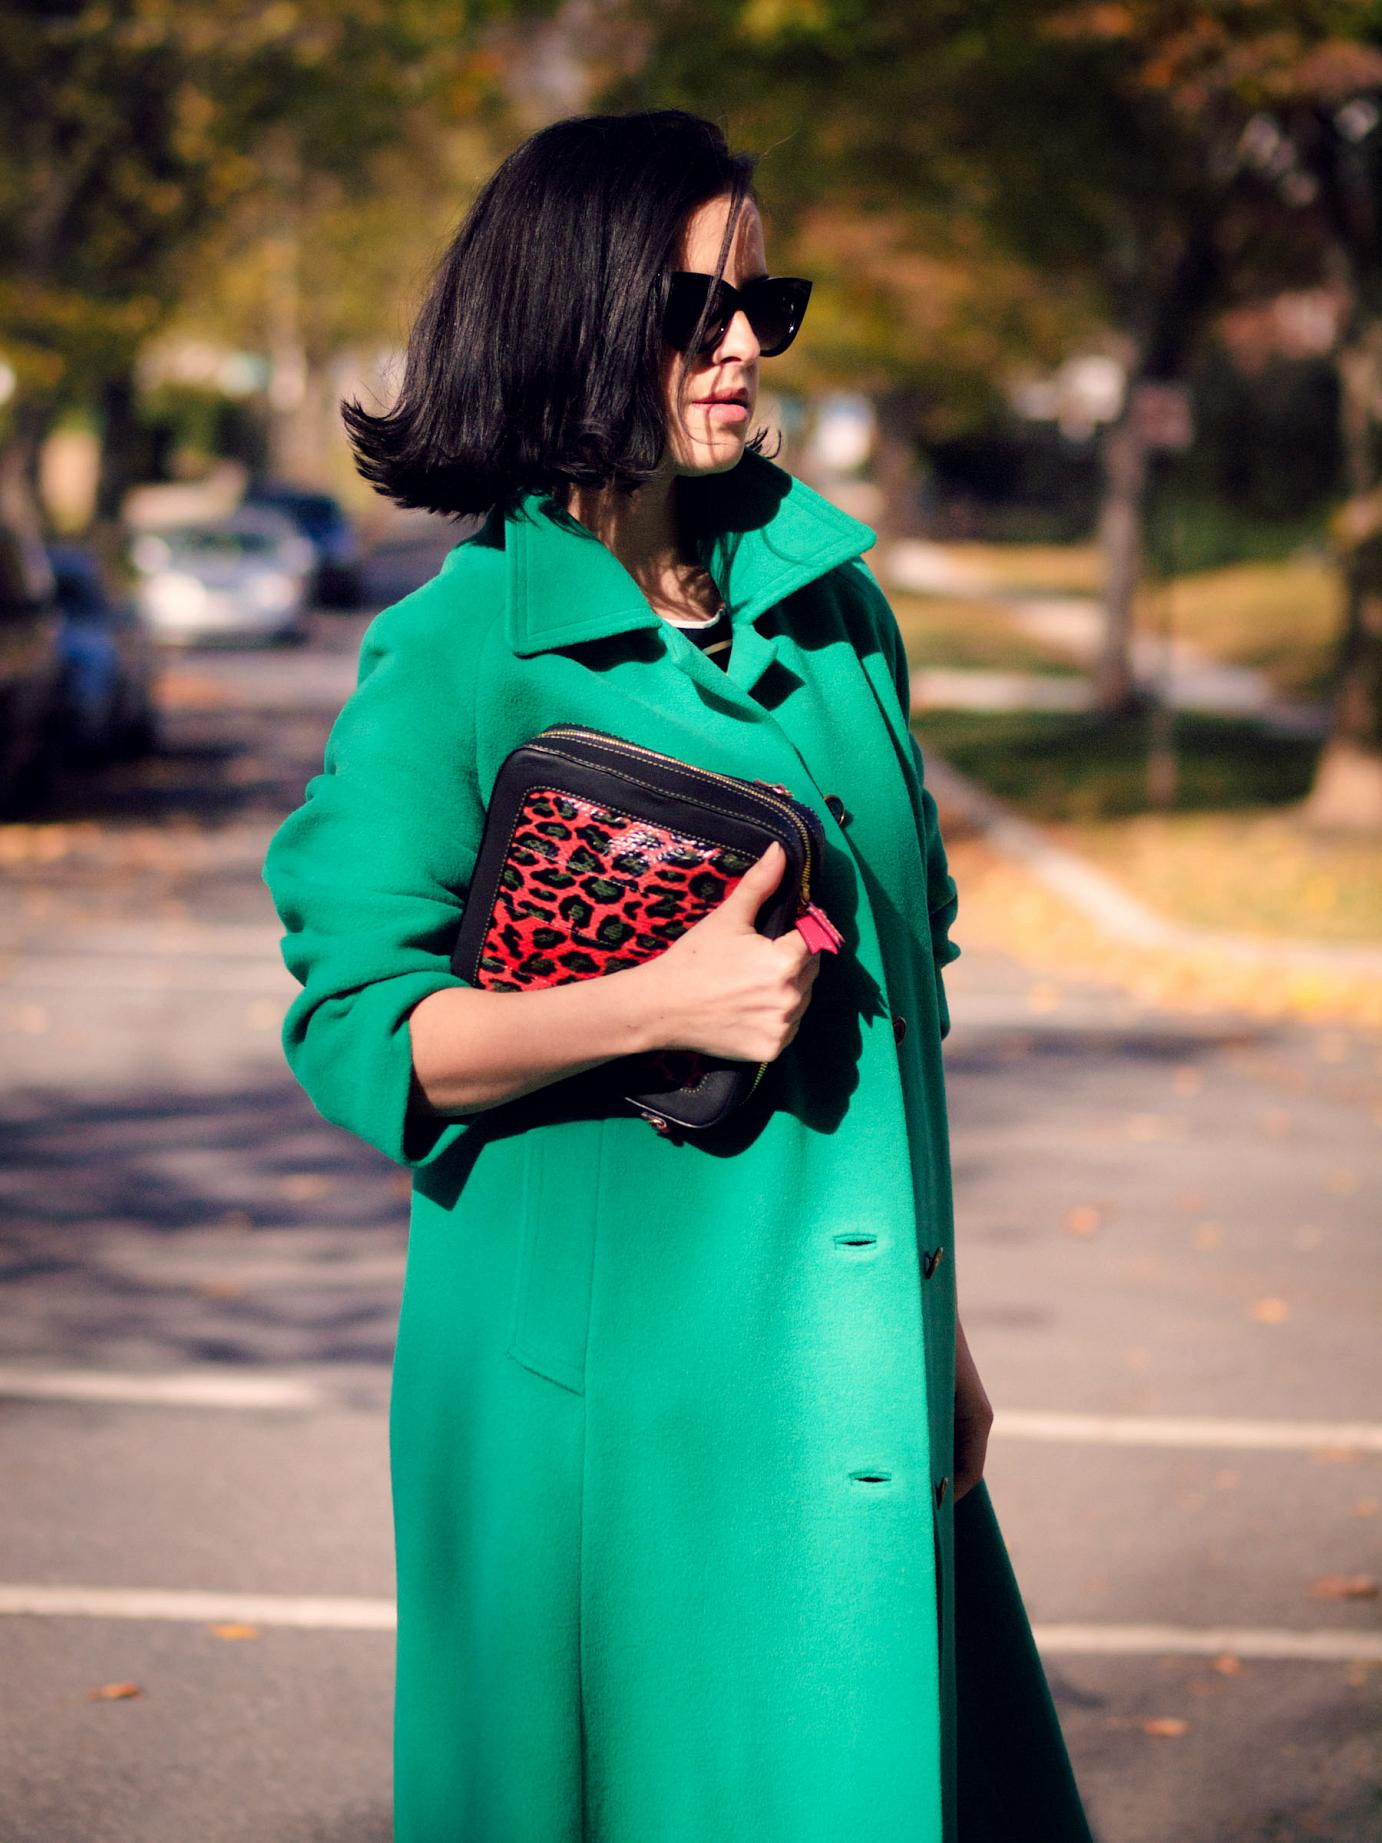 bittersweet colours, street style, fall coats, fall colors, fall trends, fall street style, Manolo Blahnik shoes, meredith wendell, stripes, boyfriend jeans, eye cat sunglasses, maternity style, bump style, 21 weeks,